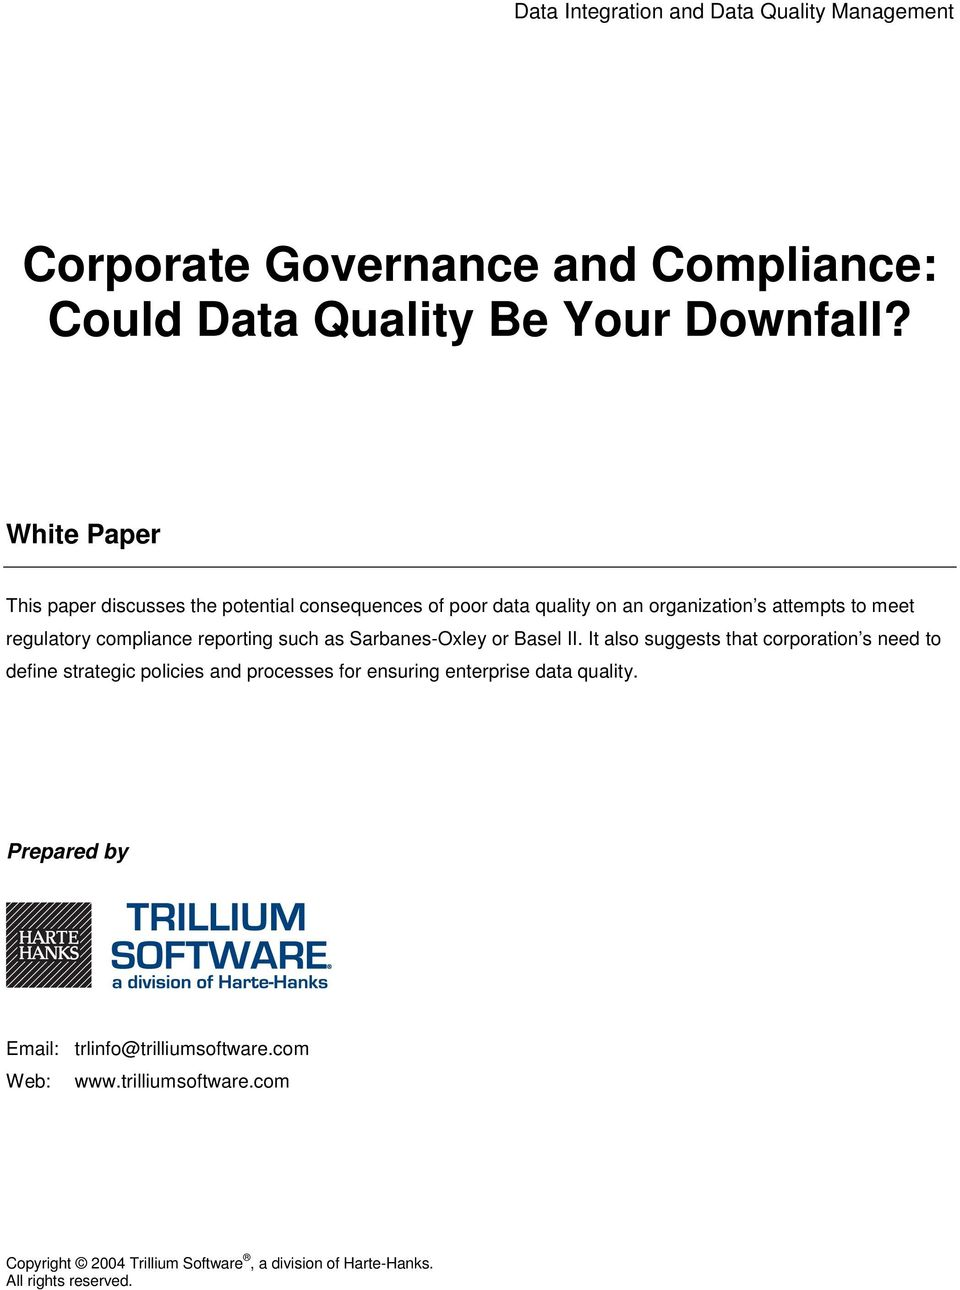 Corporate Governance And Compliance Could Data Quality Be Your